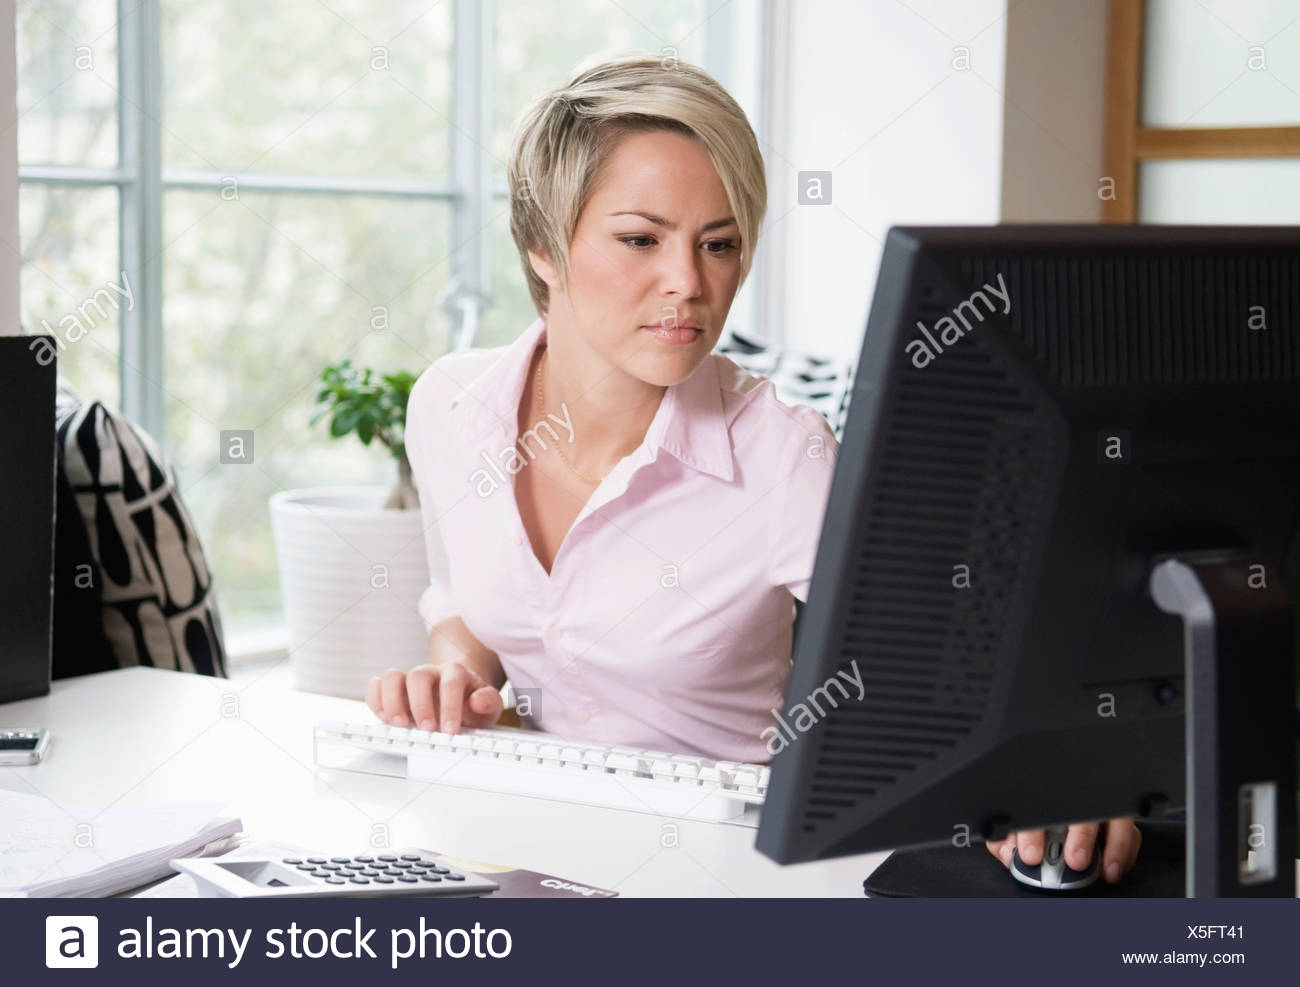 Young woman at work - Stock Image